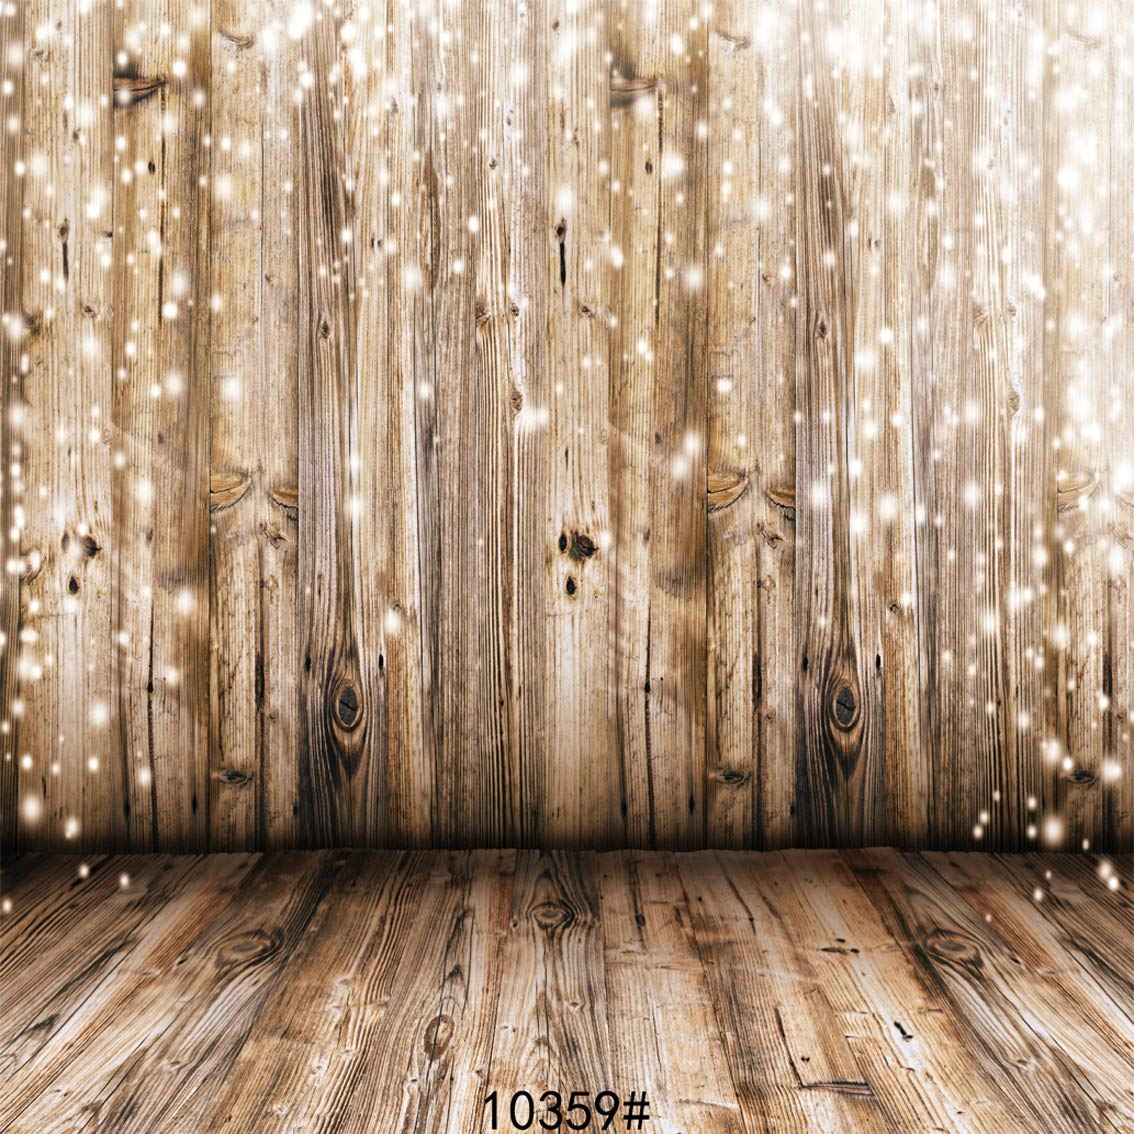 SJOLOON 10x10ft Rustic Backdrop Vinyl Photographer Background Wedding Decorations Wood Photography Backdrops for Photographers Studio Props 10359 by SJOLOON